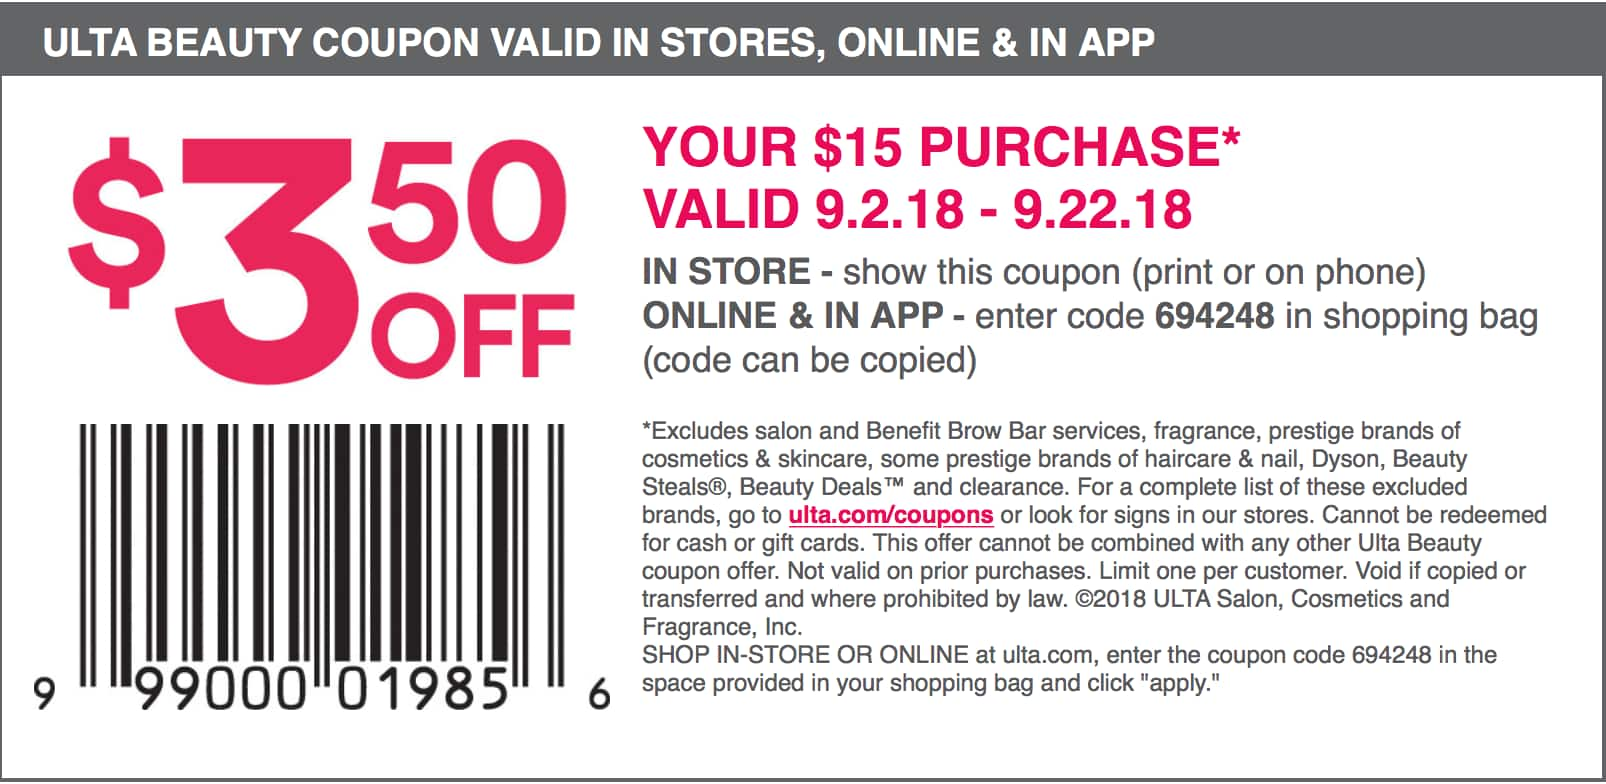 Ulta Beauty Coupon Codes, Printable coupons, and Promo Codes